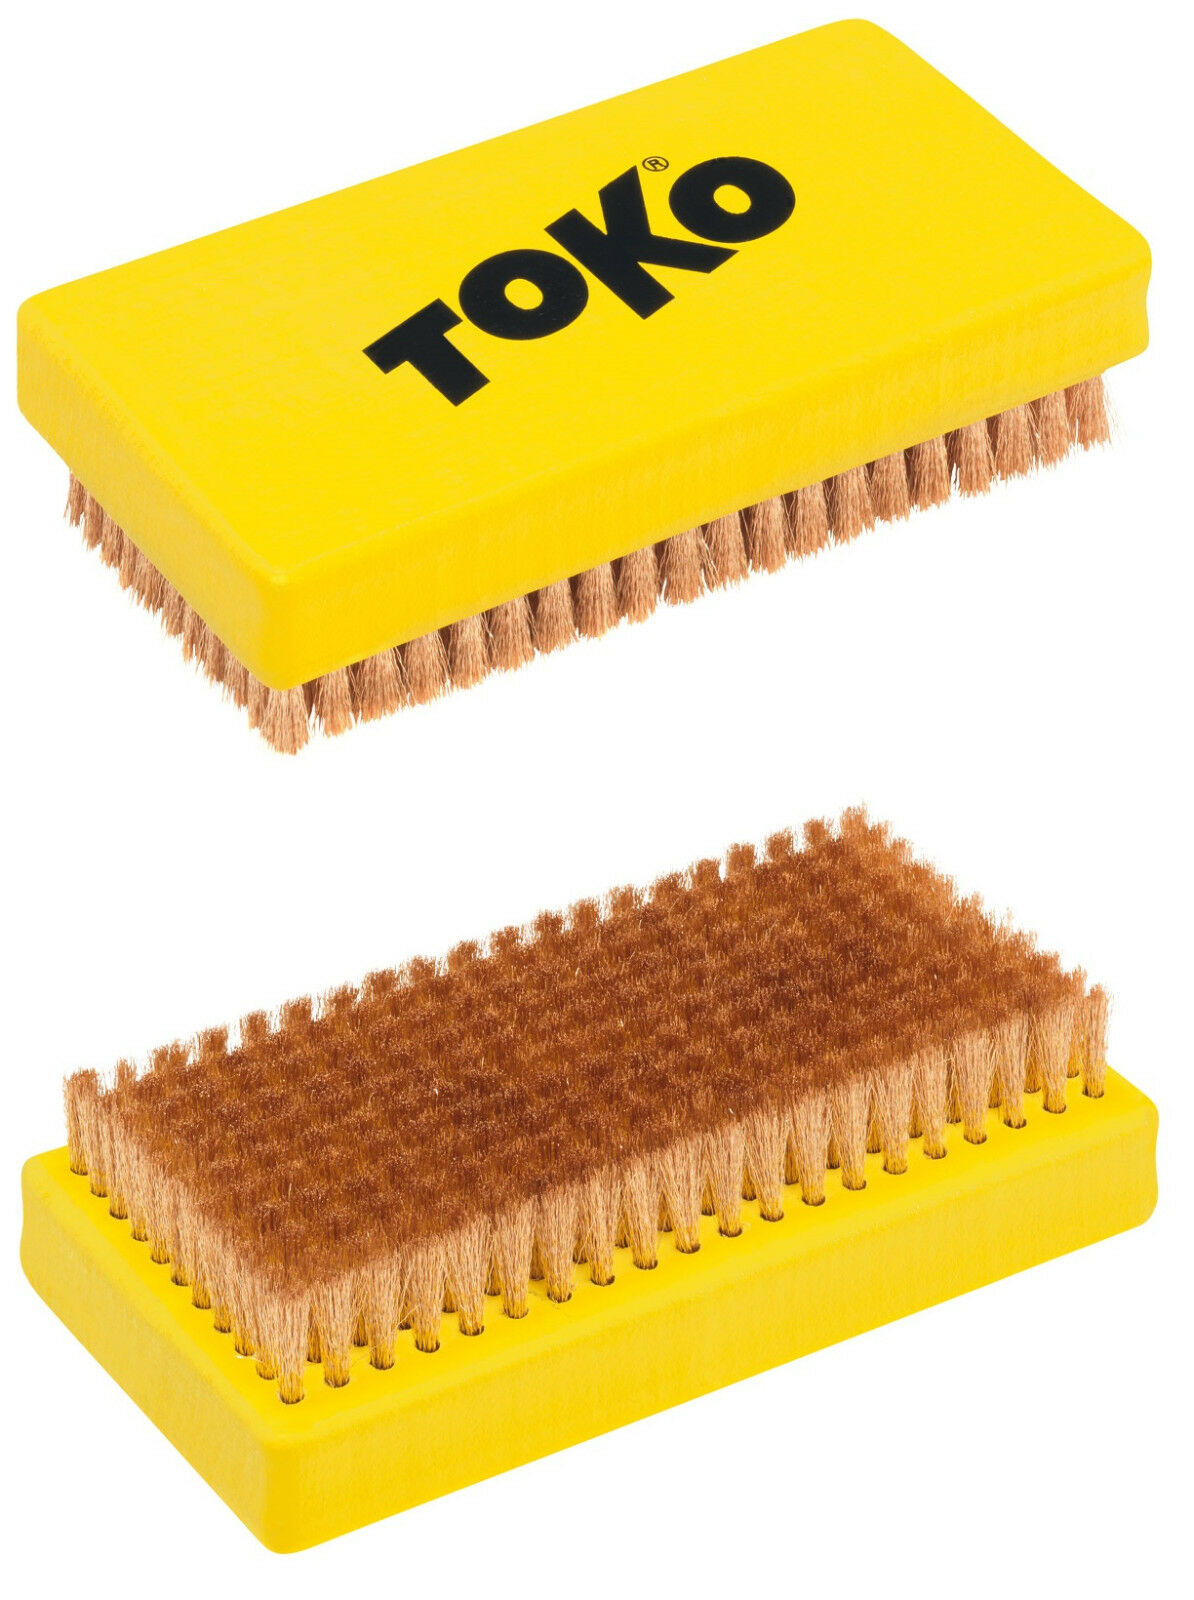 Toko Base Brosse Brosse Base cuivre CUIVRE BROSSE MULTI-USAGES 33953a